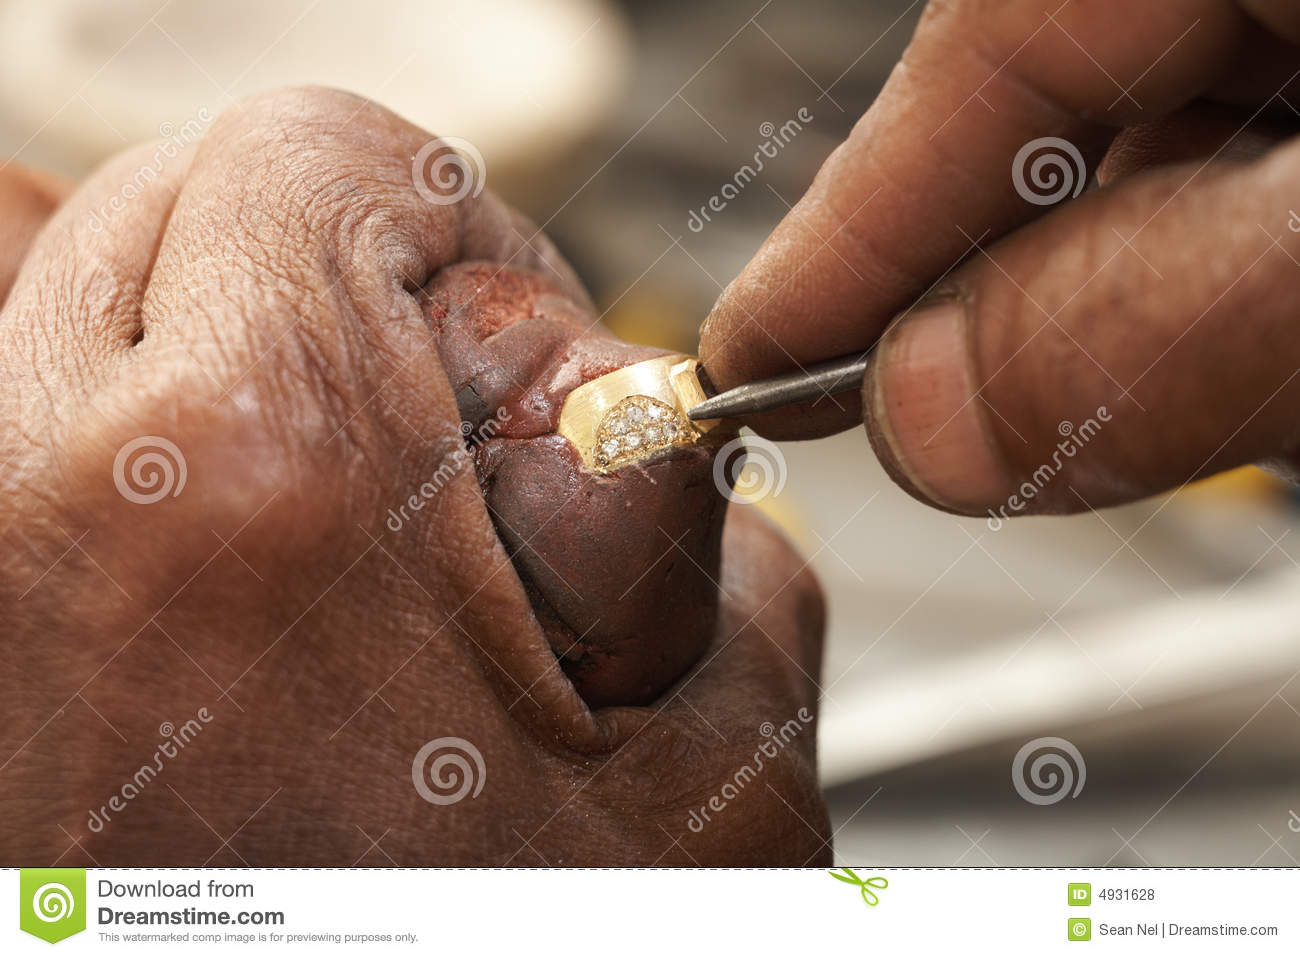 Jeweler making rings stock photo. Image of fashion, close - 4931628